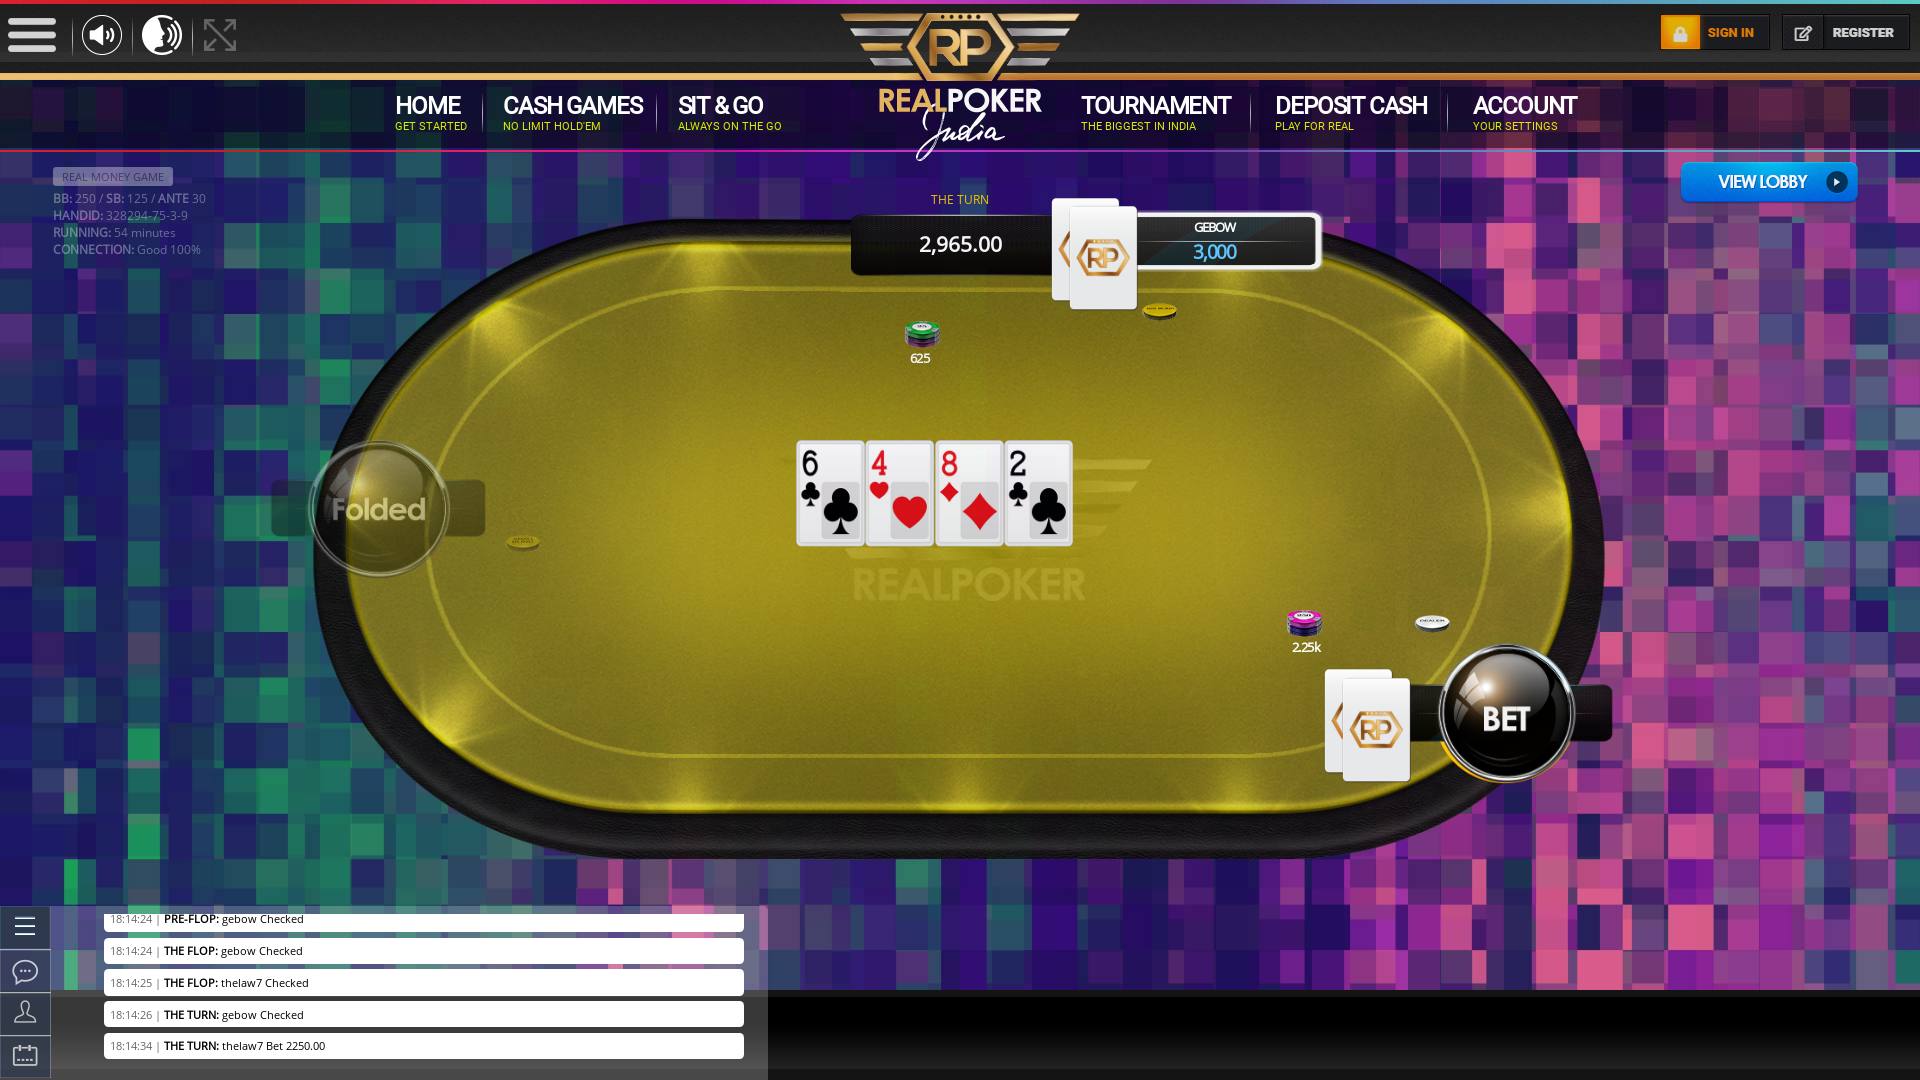 Real poker 10 player table in the 54th minute